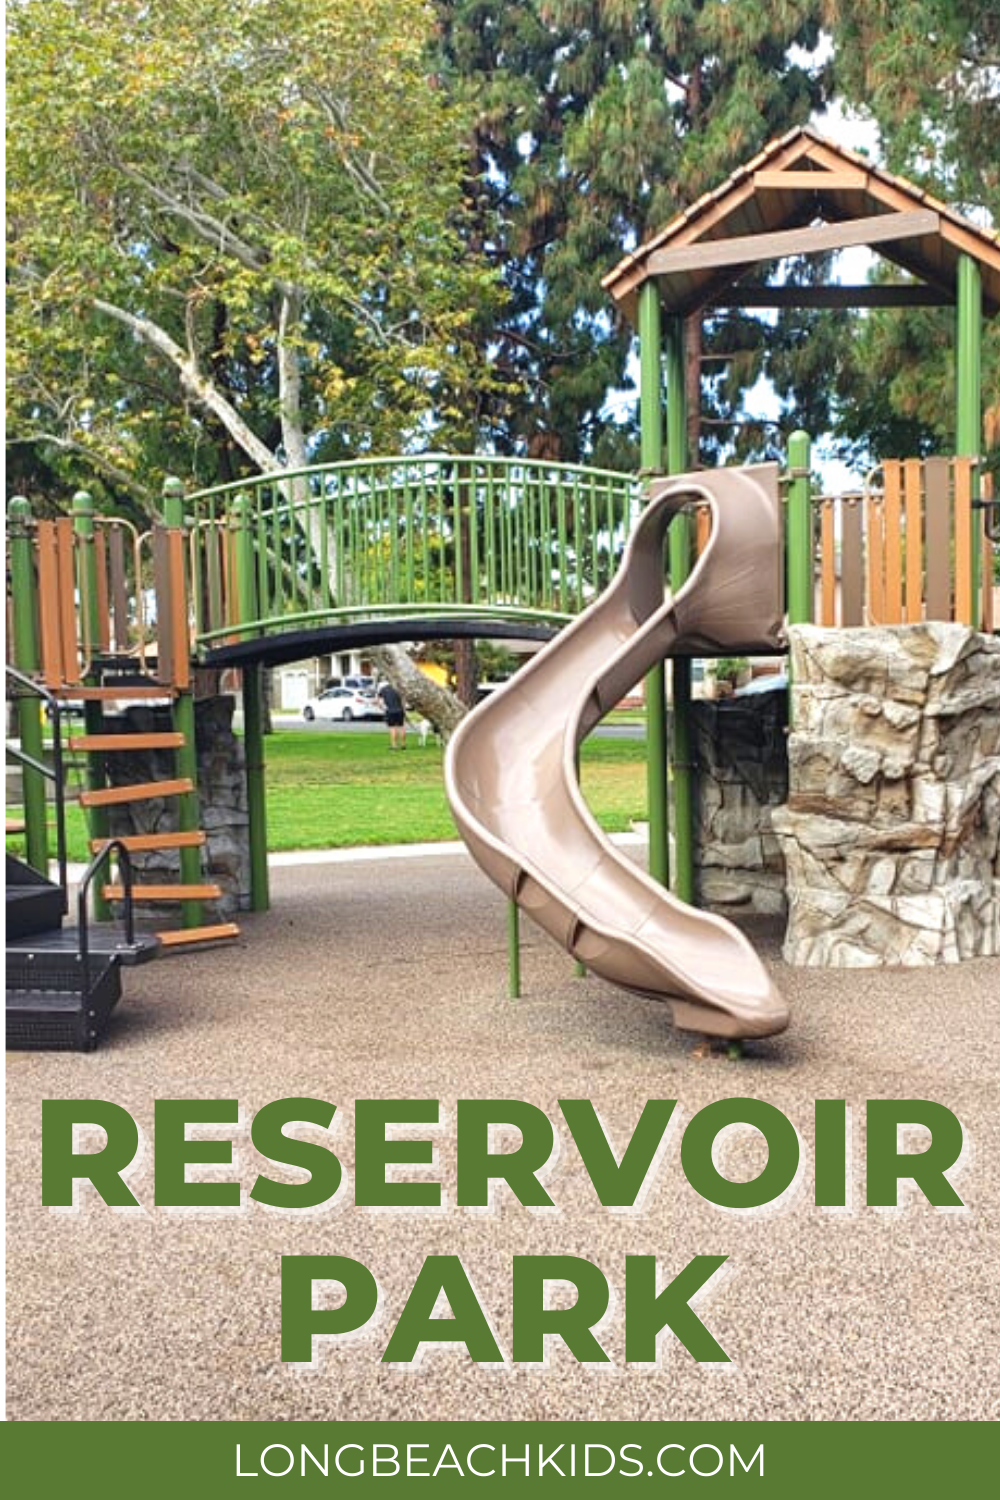 Looking for a great park, with lots of climbing and NO SAND? Then Reservoir Park is for you!